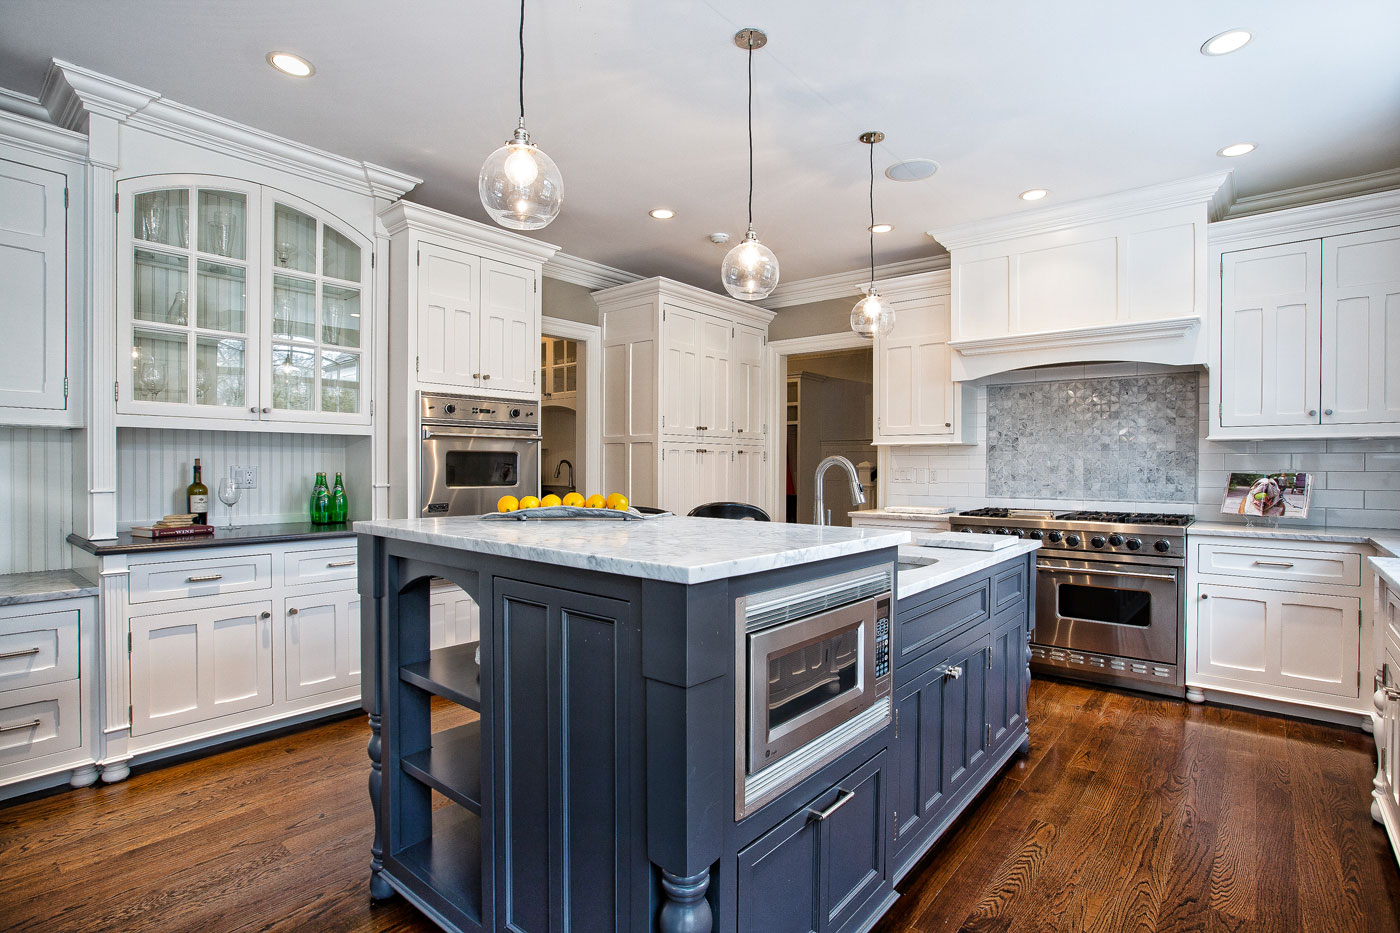 maria-matluck-kitchen-designer-remodeling-connecticut-1